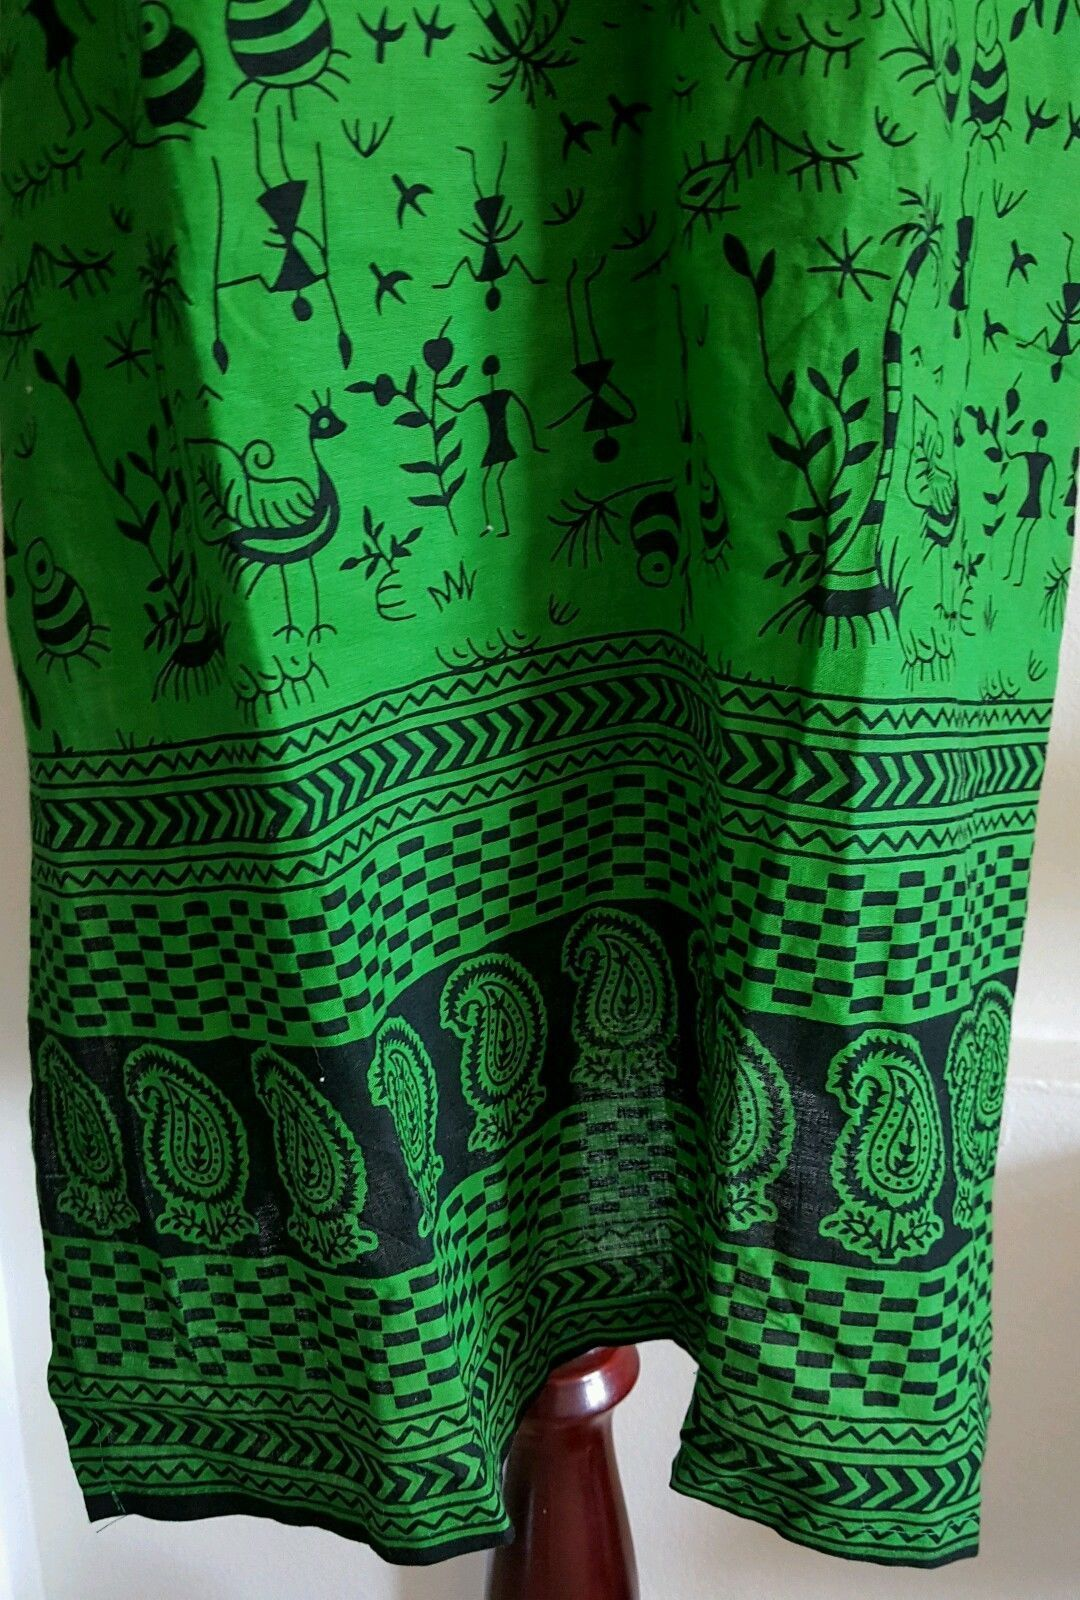 Tunic Top Green and Black Playful Fun Fabric Cotton Short Sleeve Size L NWOT